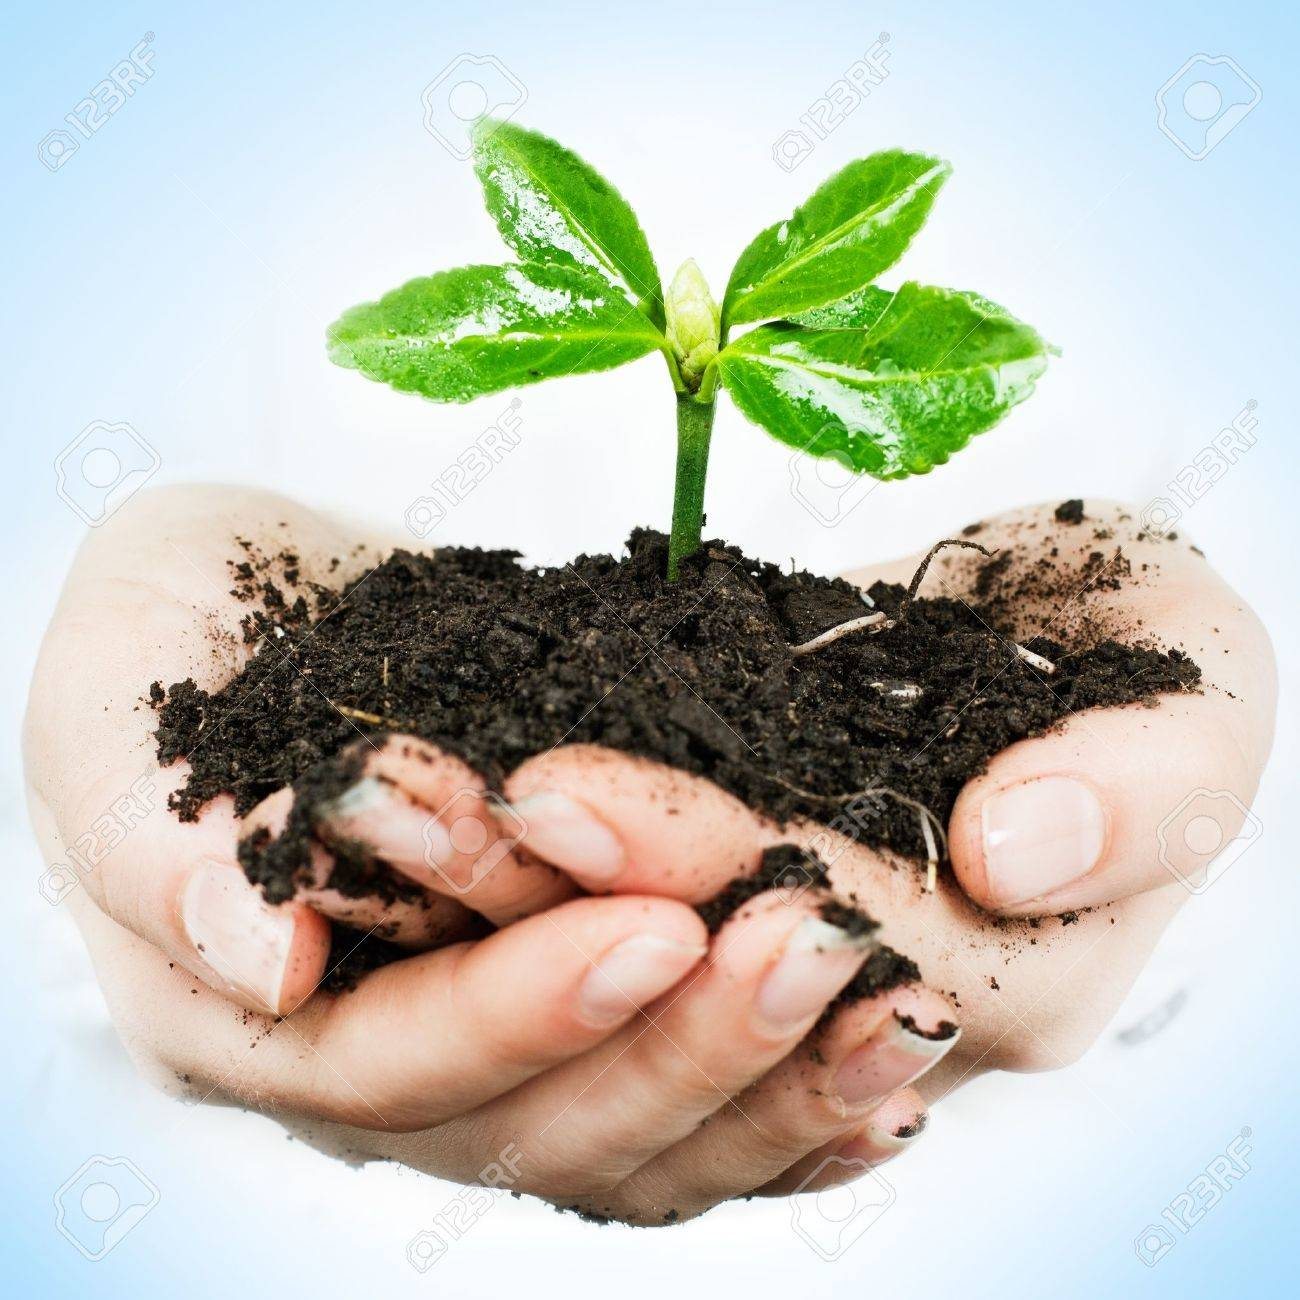 Small plant growing in the human hands - 13168918